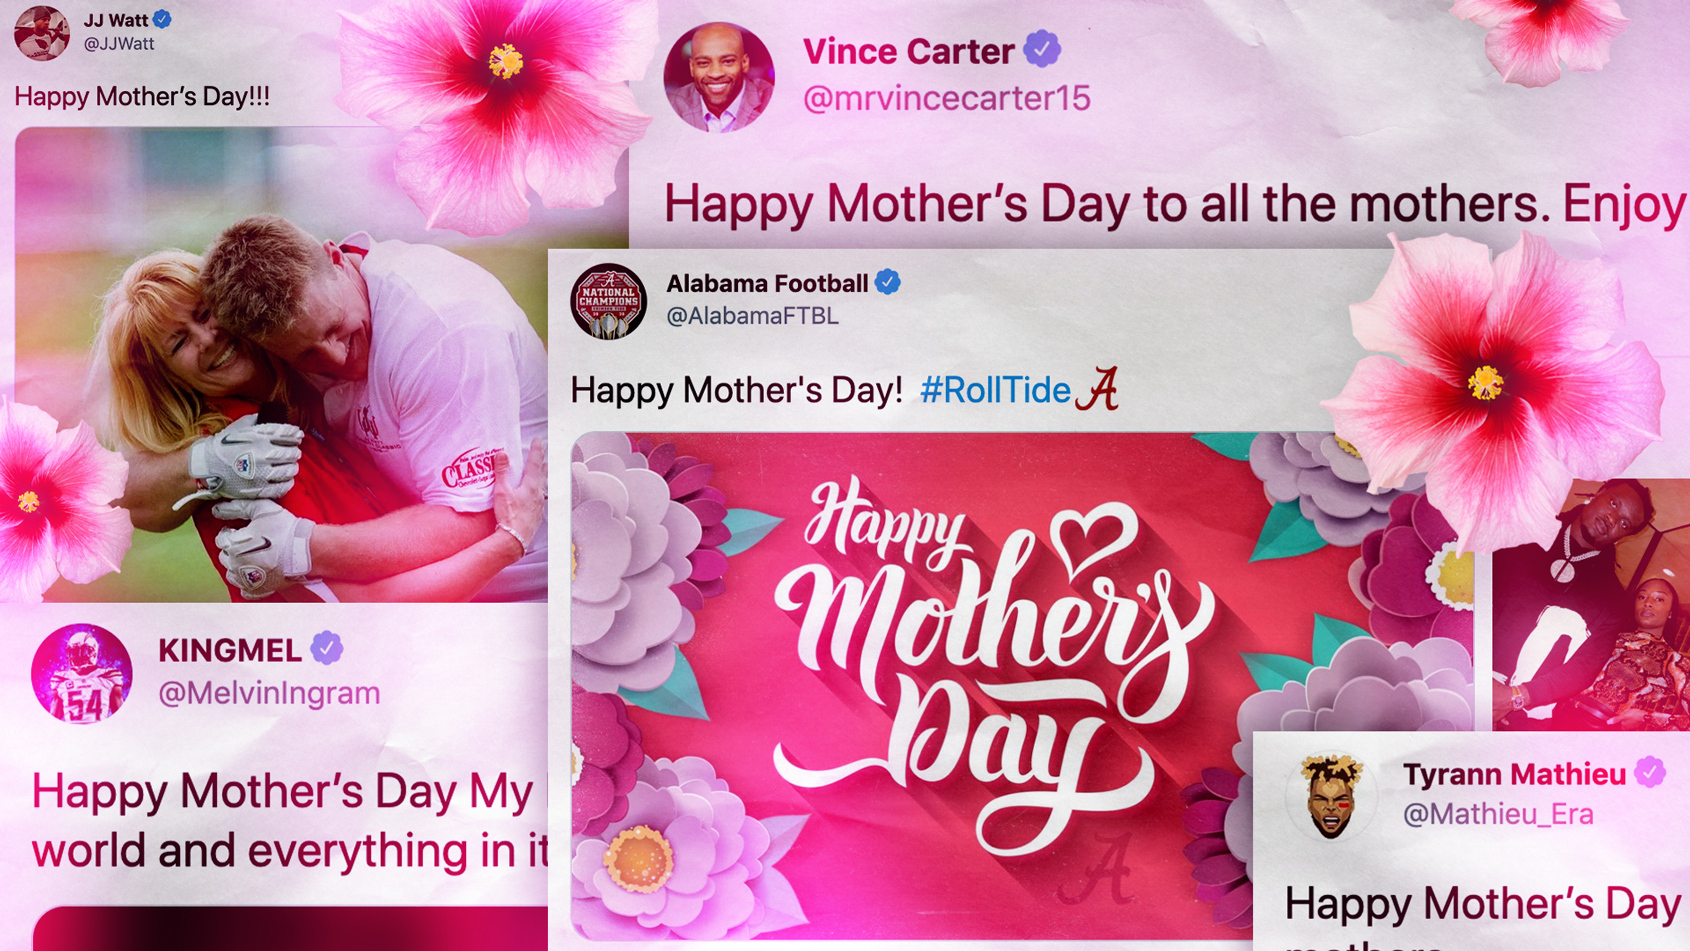 Mother's Day 2021: Top tributes from around the sports world